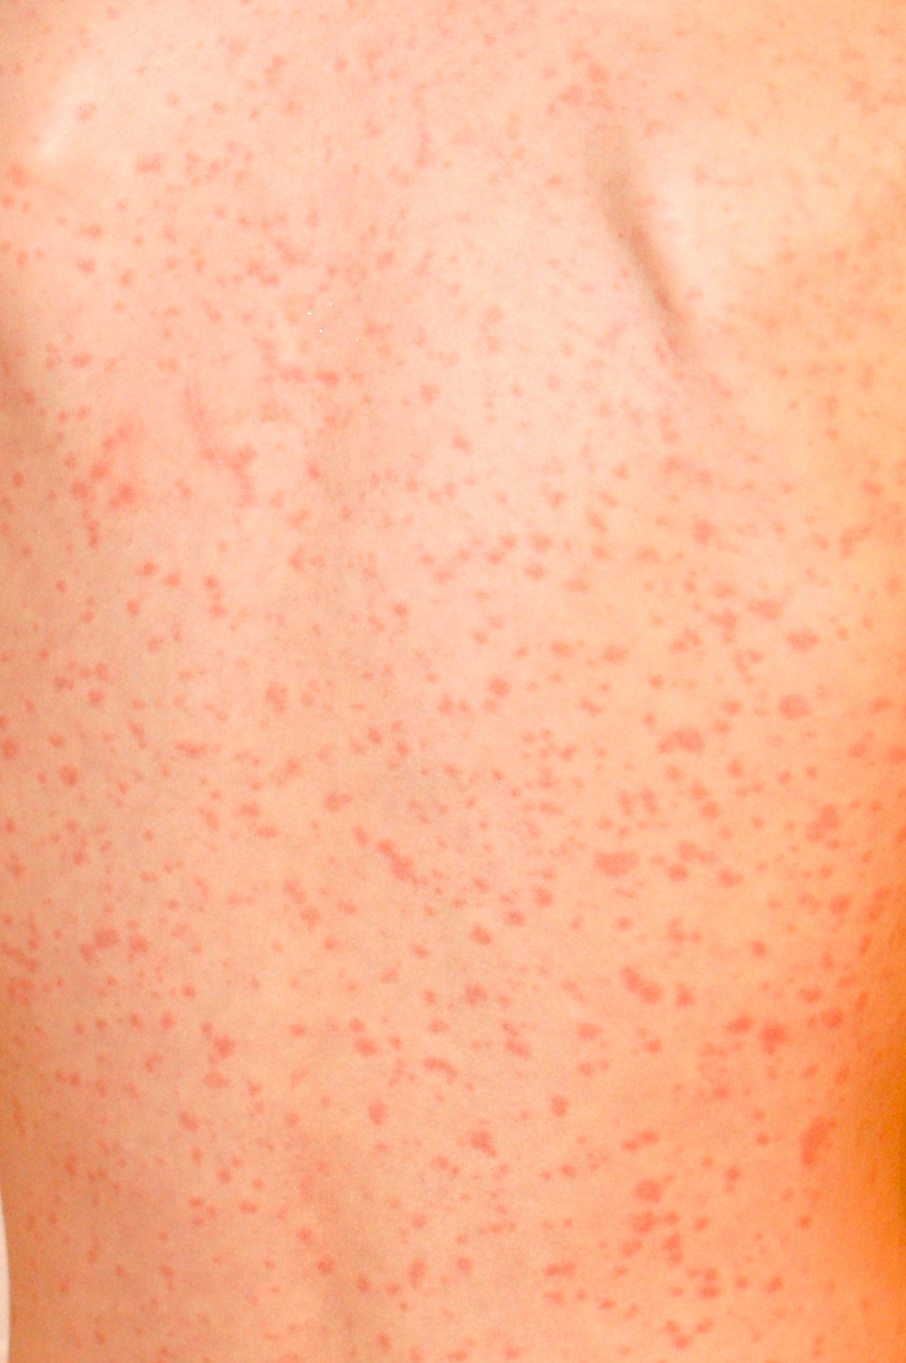 symptoms early measles Diseases: a brief guide to causes, symptoms, history, and treatment search our collections k­1 2 te aching and le arnin.